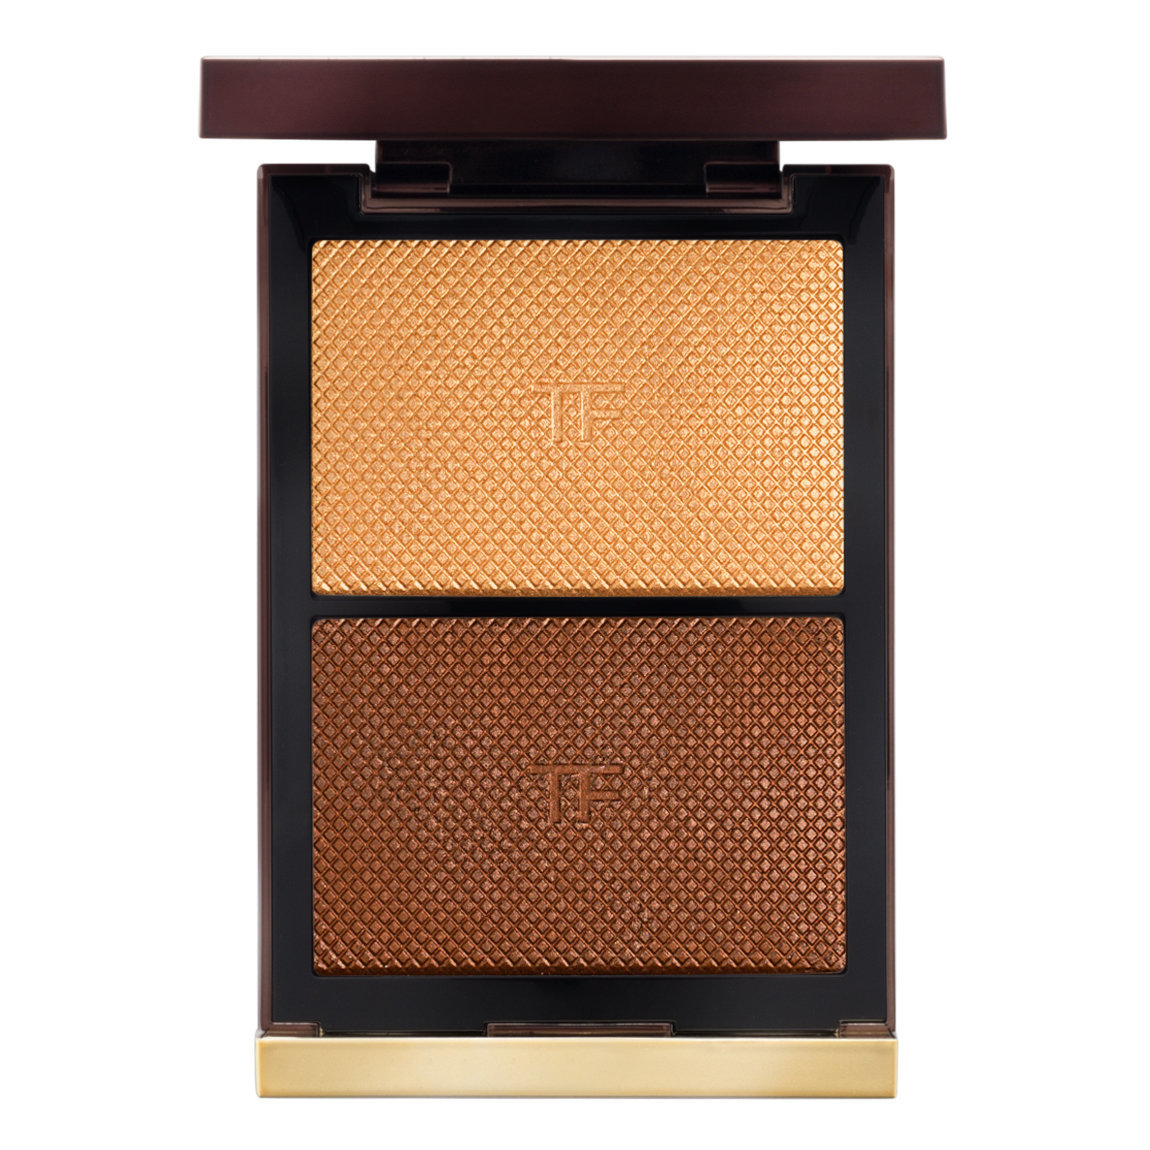 TOM FORD Skin Illuminating Powder Duo Flicker product swatch.